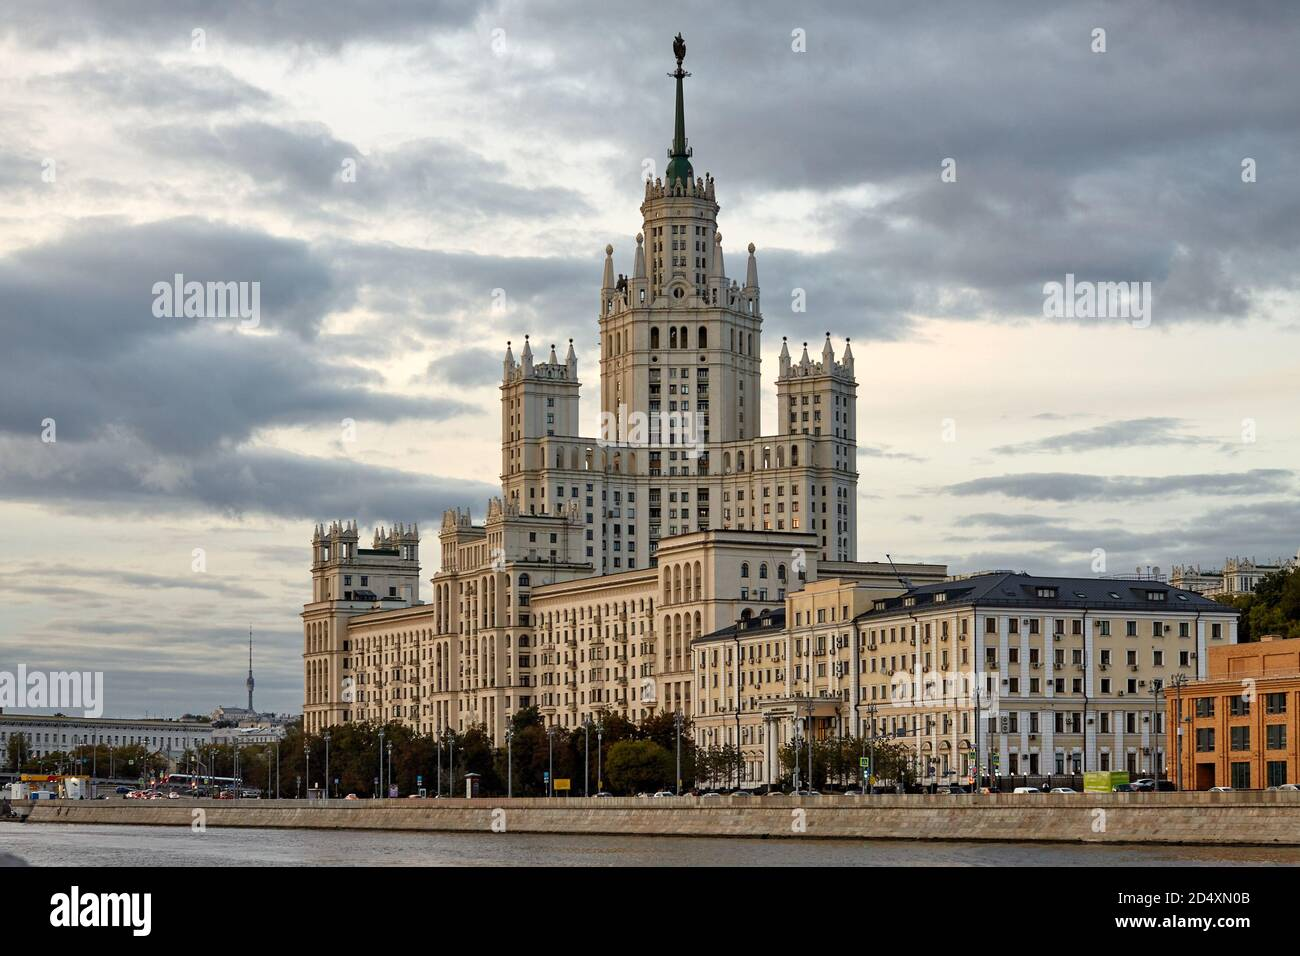 Moscow / Russia - September 11, 2020: Most famous residential building known as the Stalinskaya Visotka Stock Photo